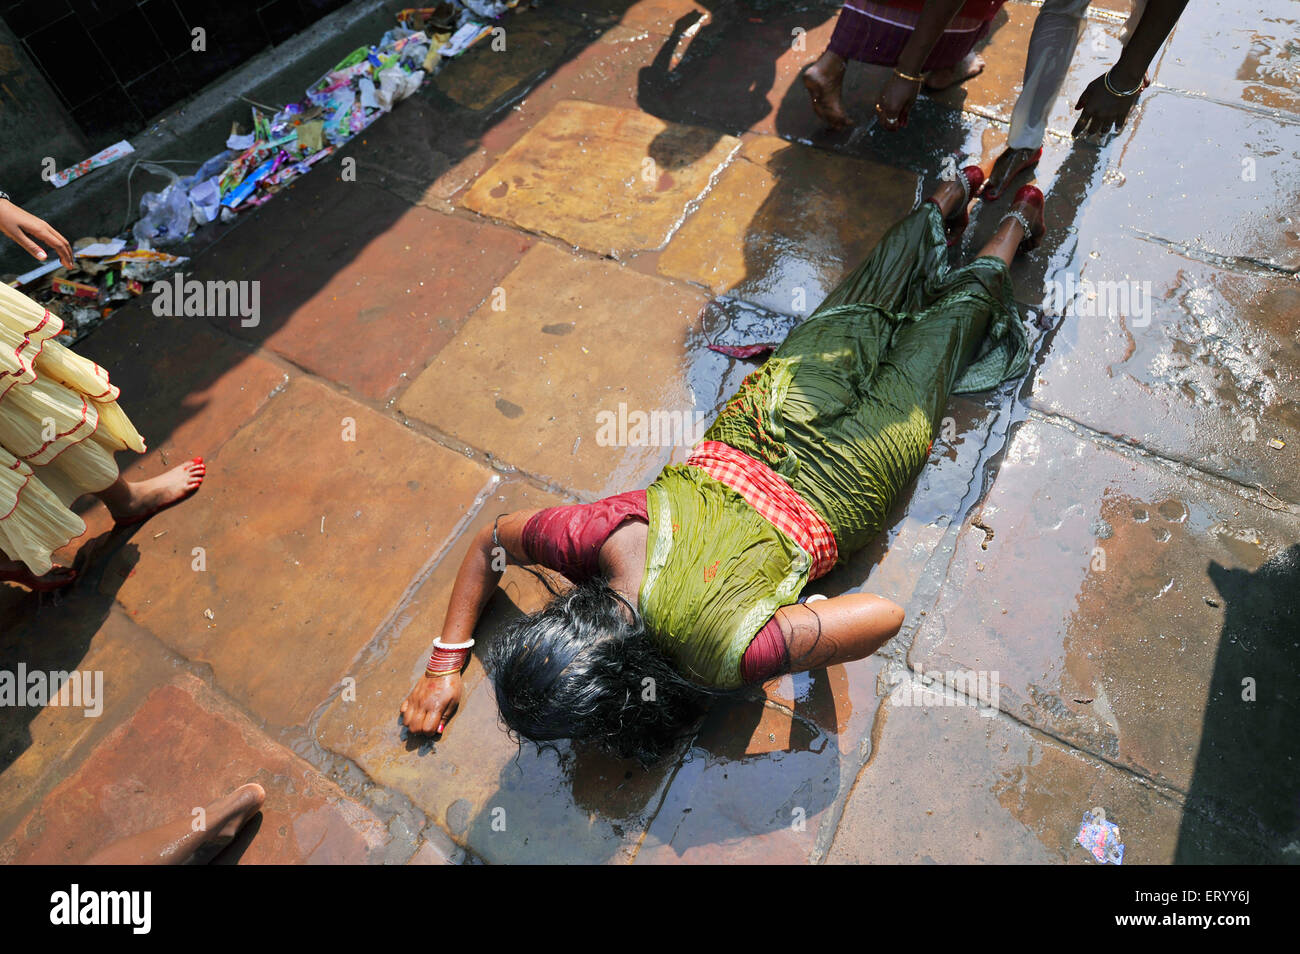 Summer worship by stretching on pavements while water is spread to cool the pilgrims at Kalighat Kolkata India - Stock Image